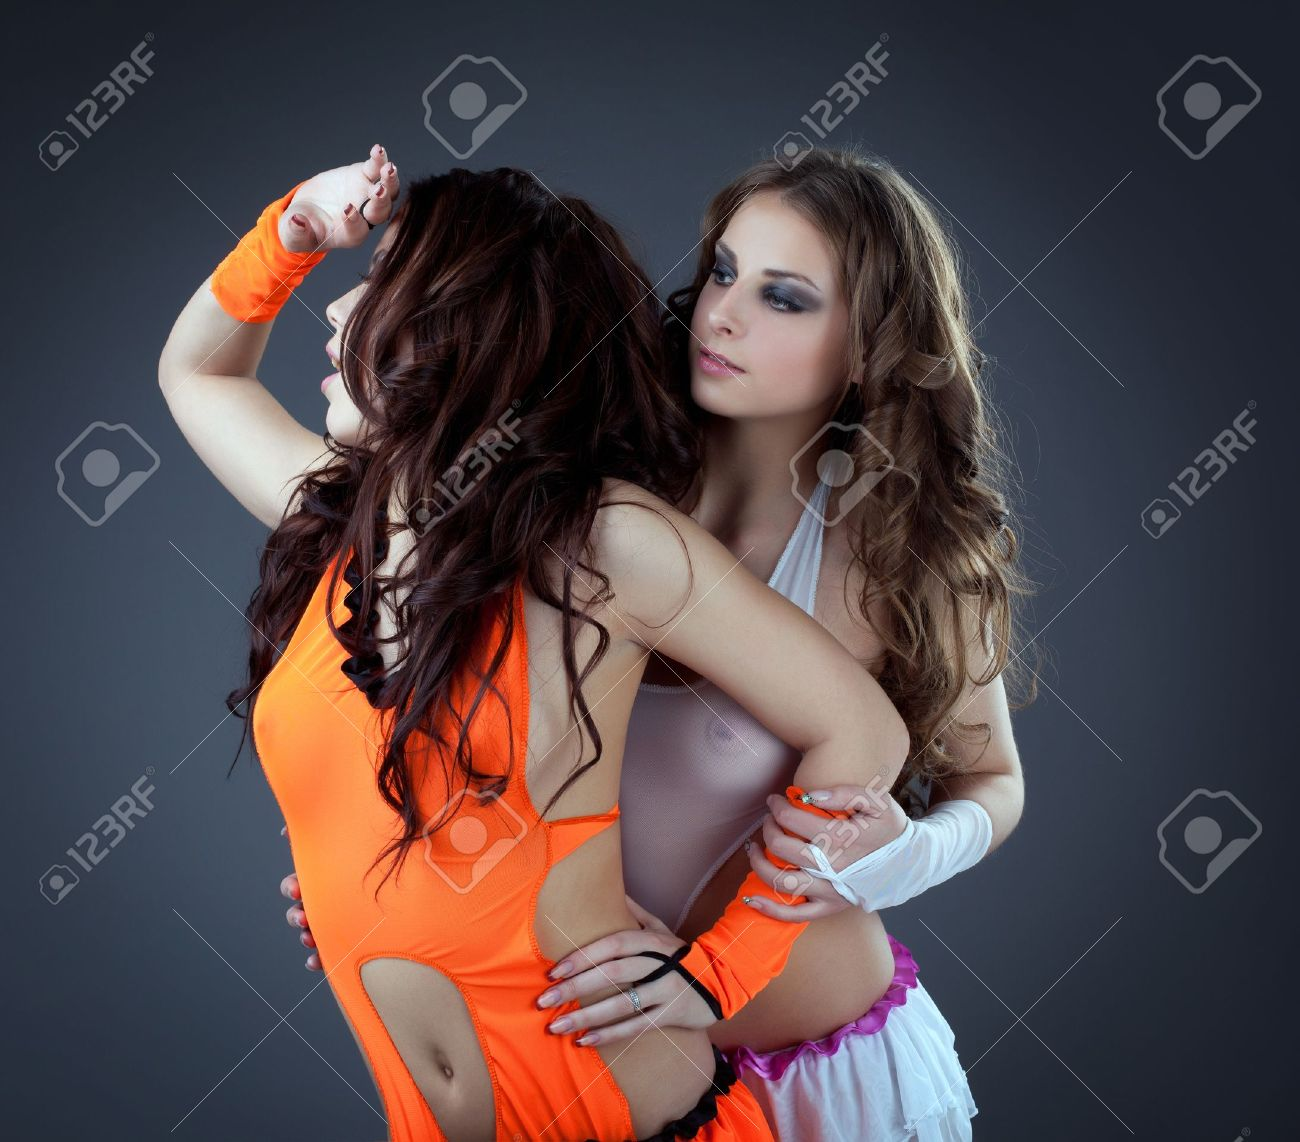 Beauty couple of sexy girl - go-go dancers Stock Photo - 13169021